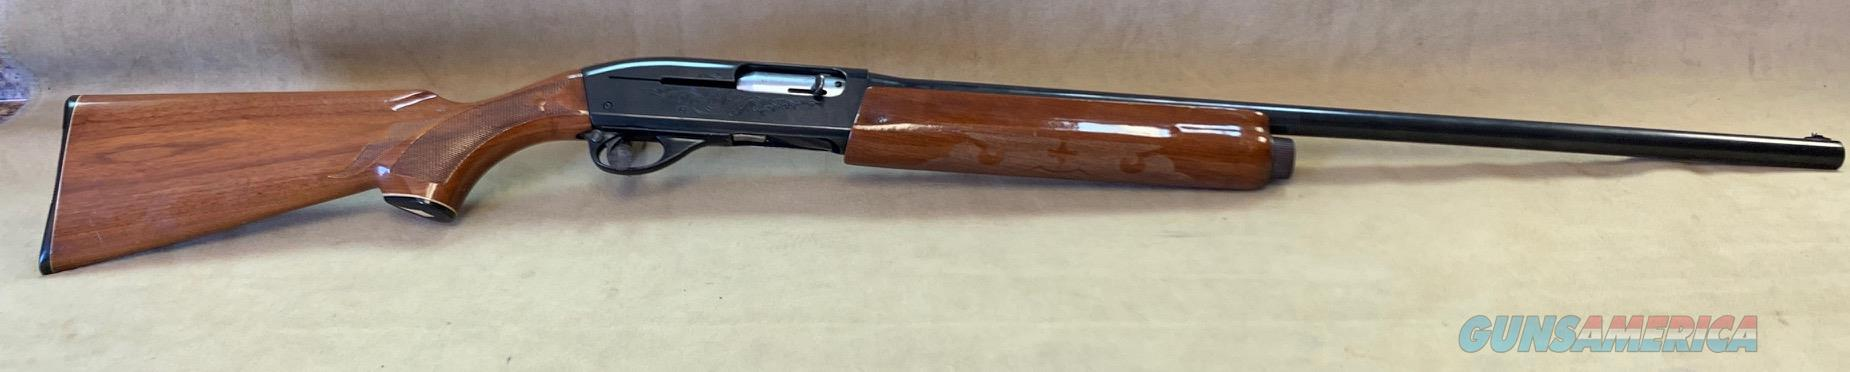 Remington 1100 12 gauge Consignment  Guns > Shotguns > Remington Shotguns  > Autoloaders > Hunting